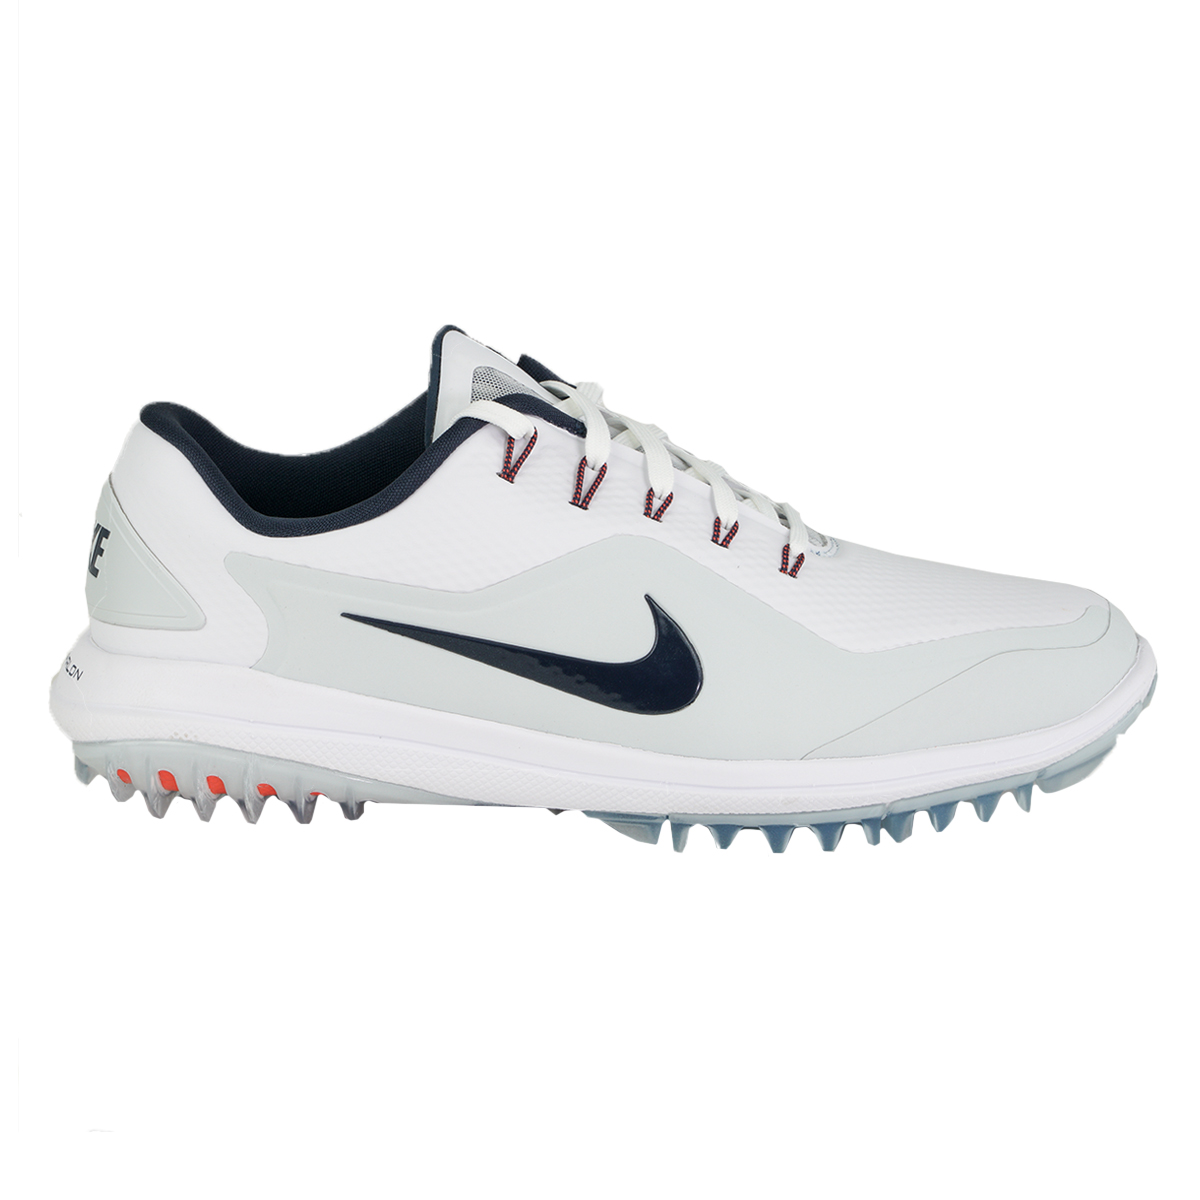 fcd0d40be3670 Details about Nike Men s Lunar Control Vapor 2 Golf Shoes White Thunder  Blue 9.5 W